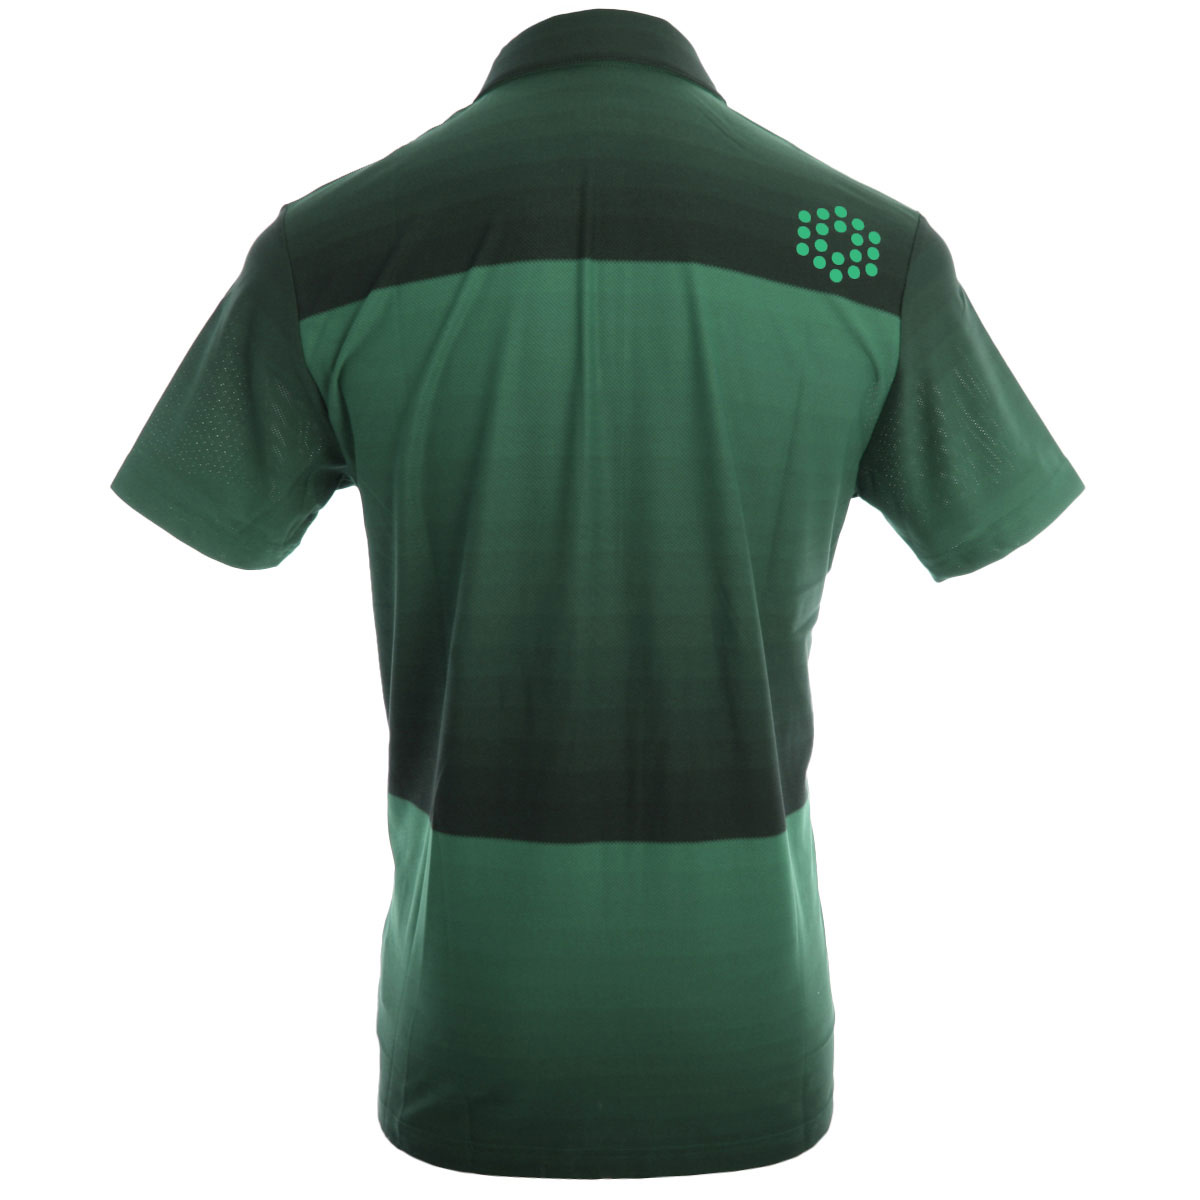 Puma golf 2014 mens ombre stripe polo shirt ebay for Mens puma golf shirts